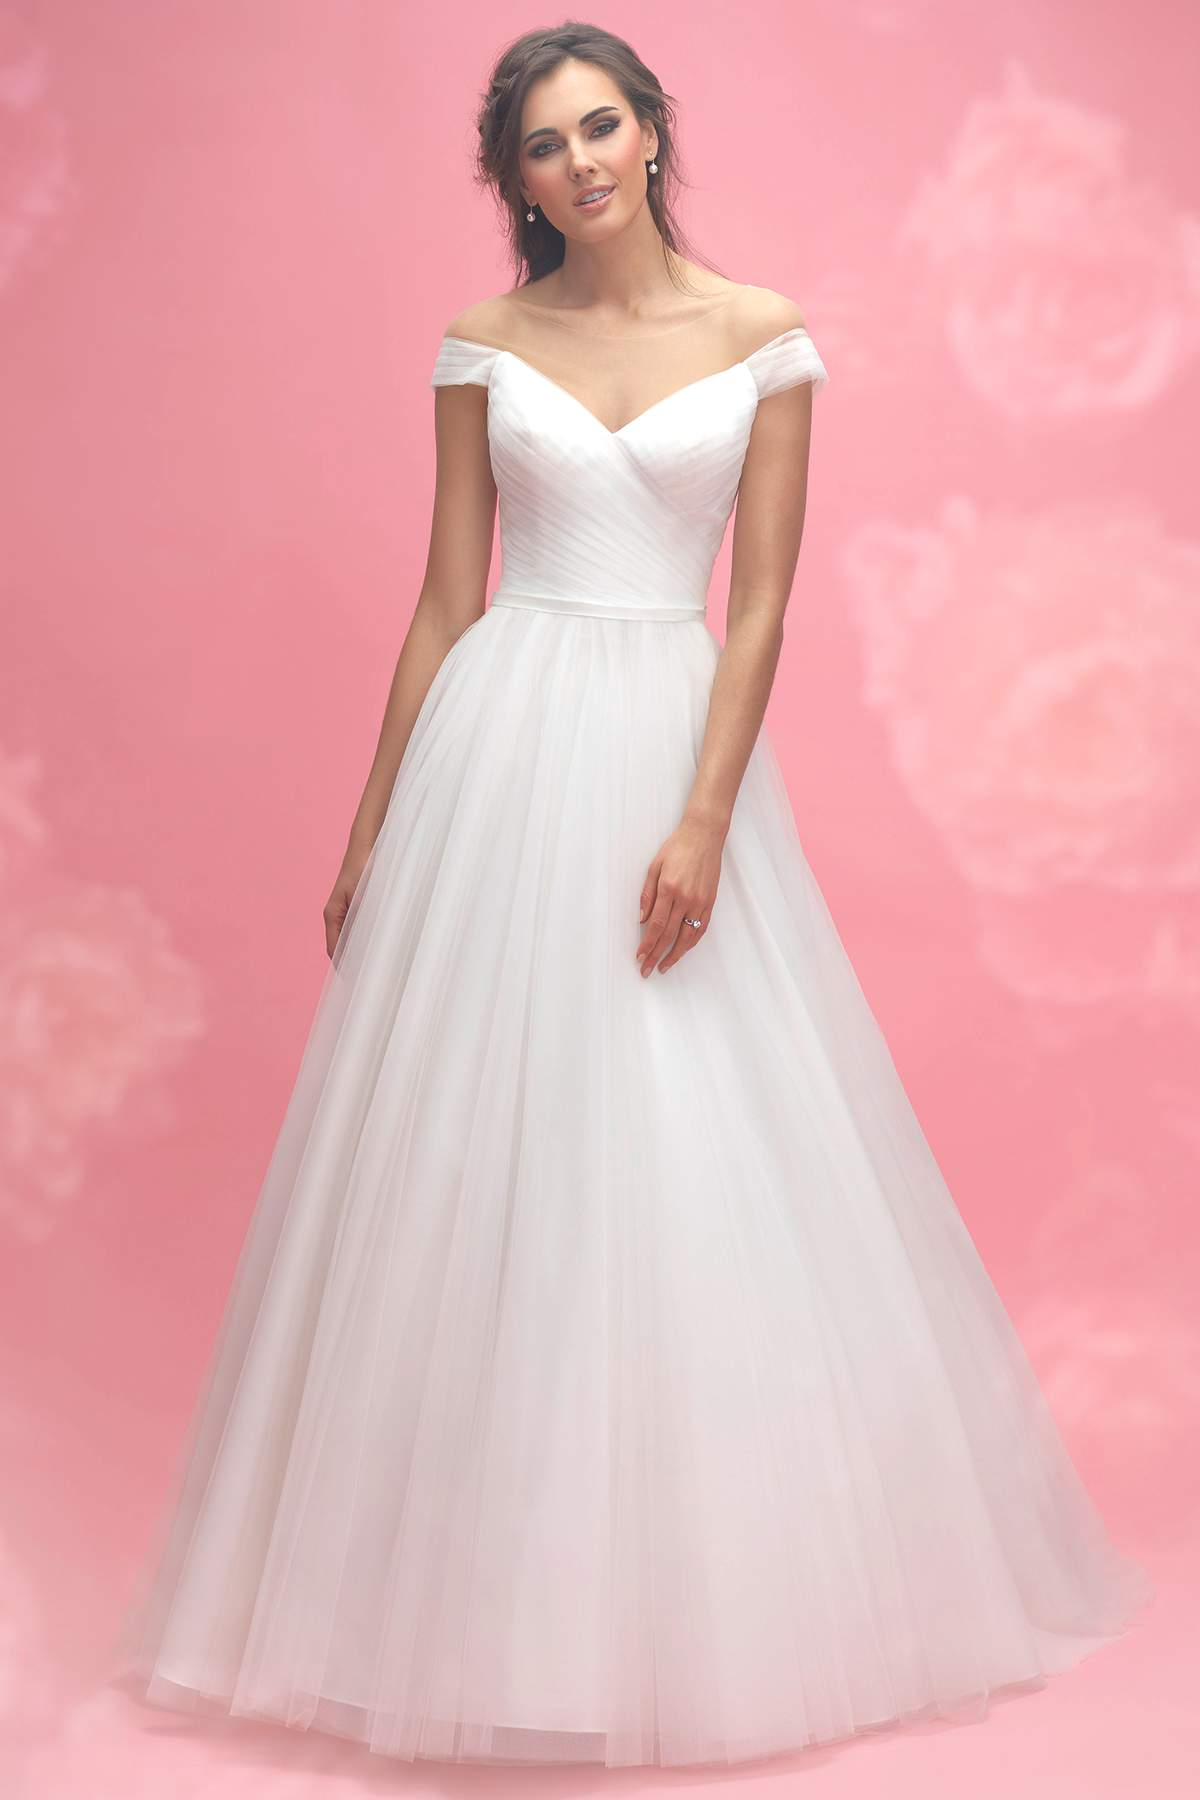 Style 3062 by Allure Romance - Find Your Dream Dress